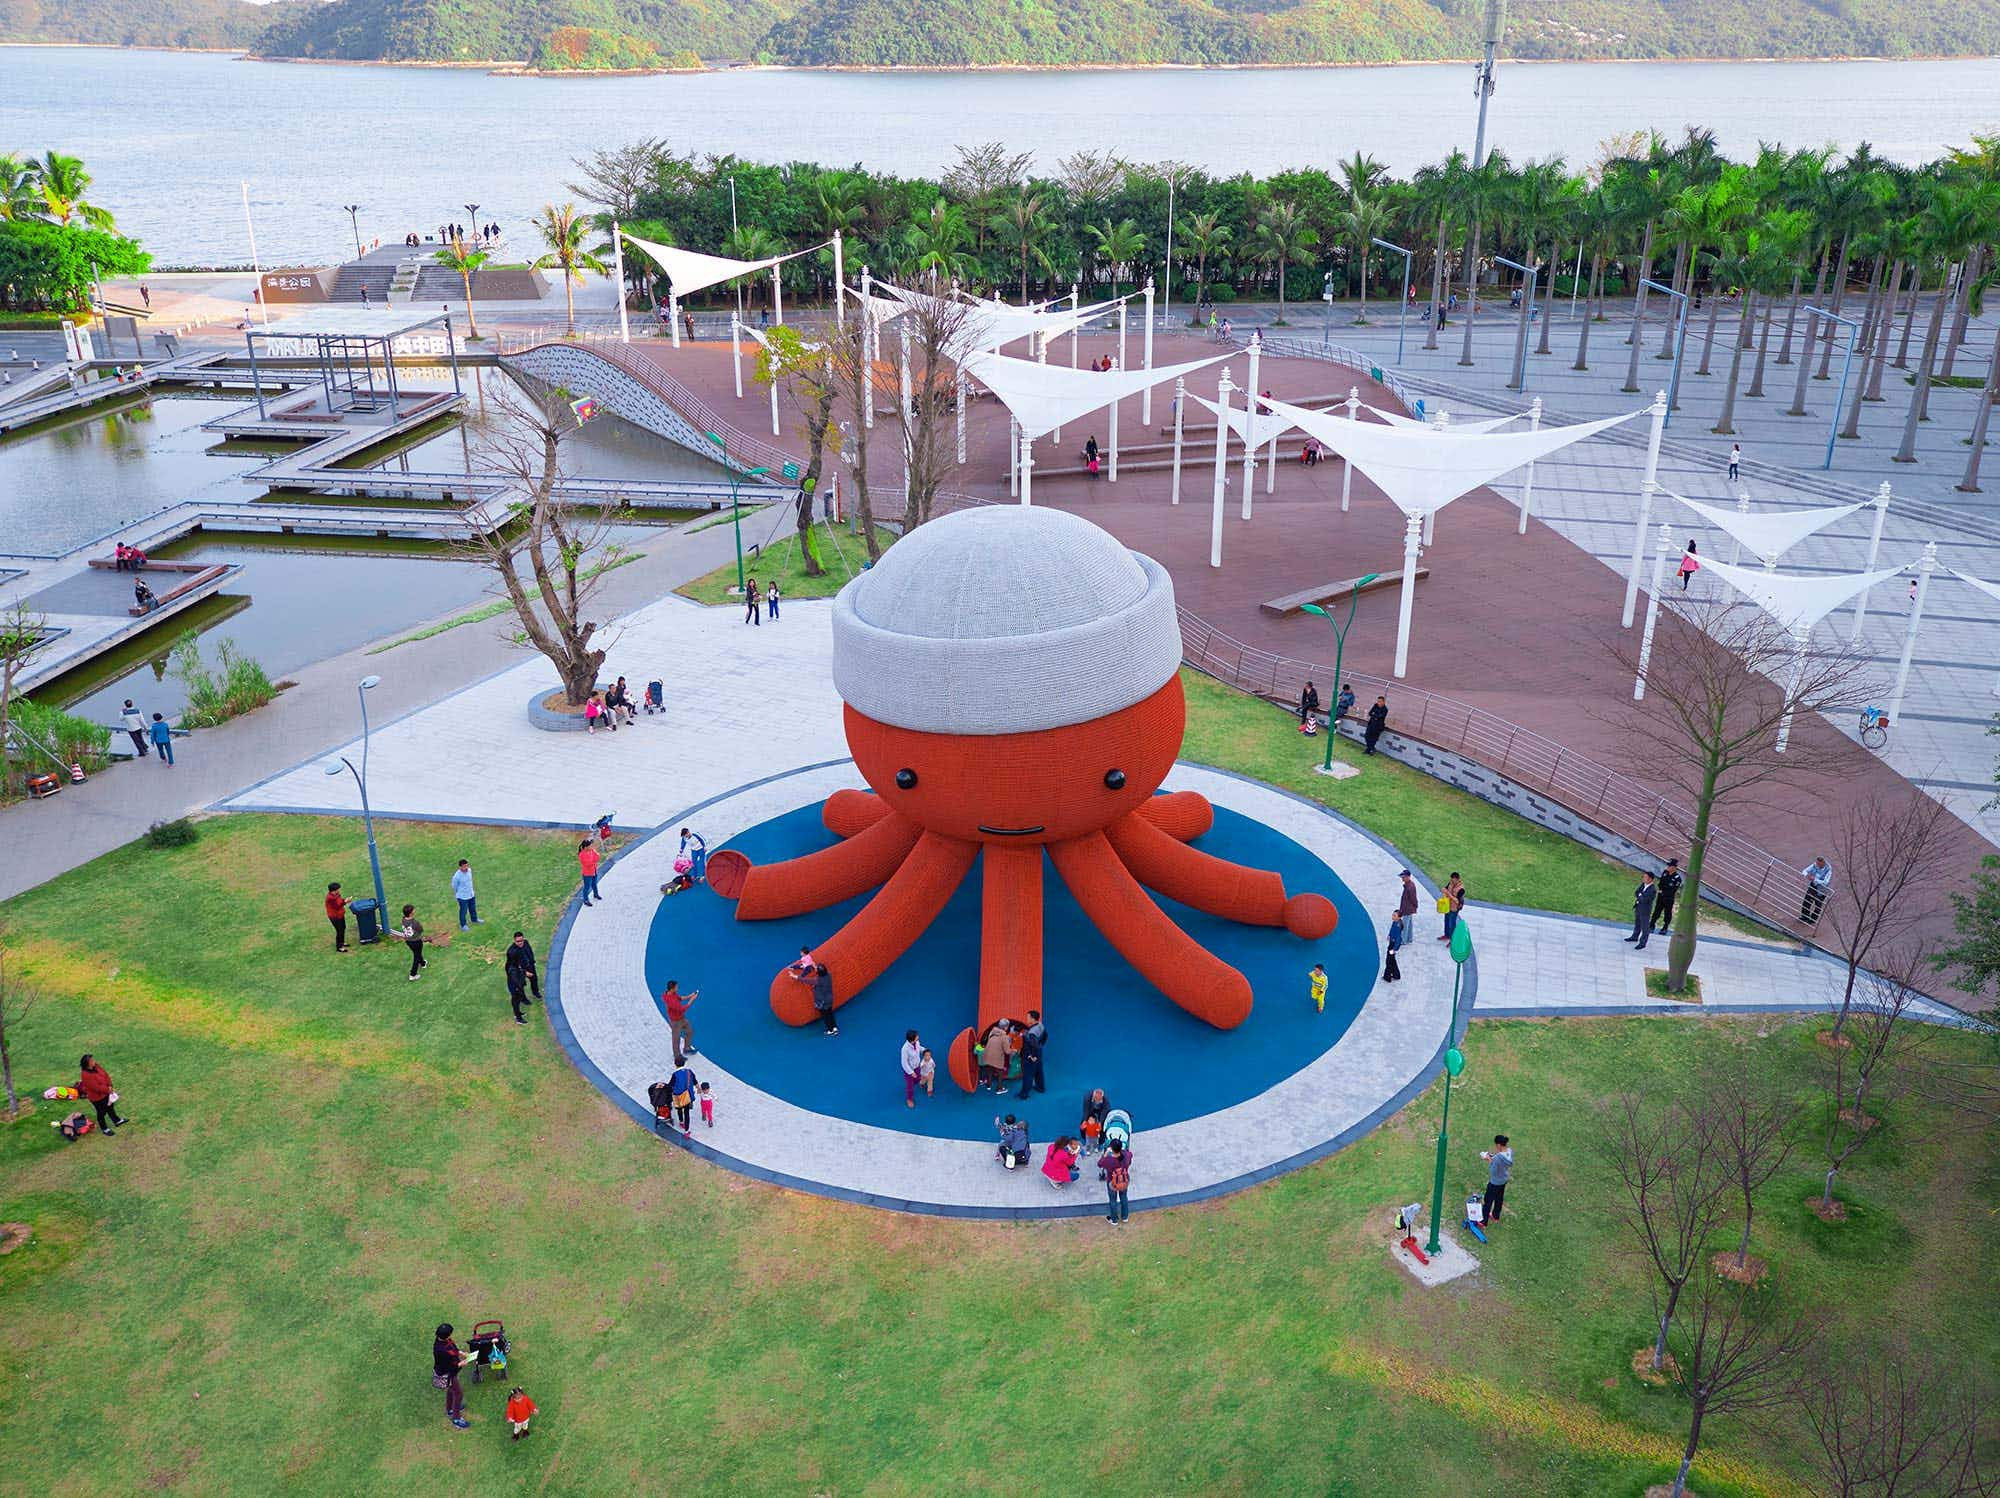 You can climb inside this giant friendly octopus in China